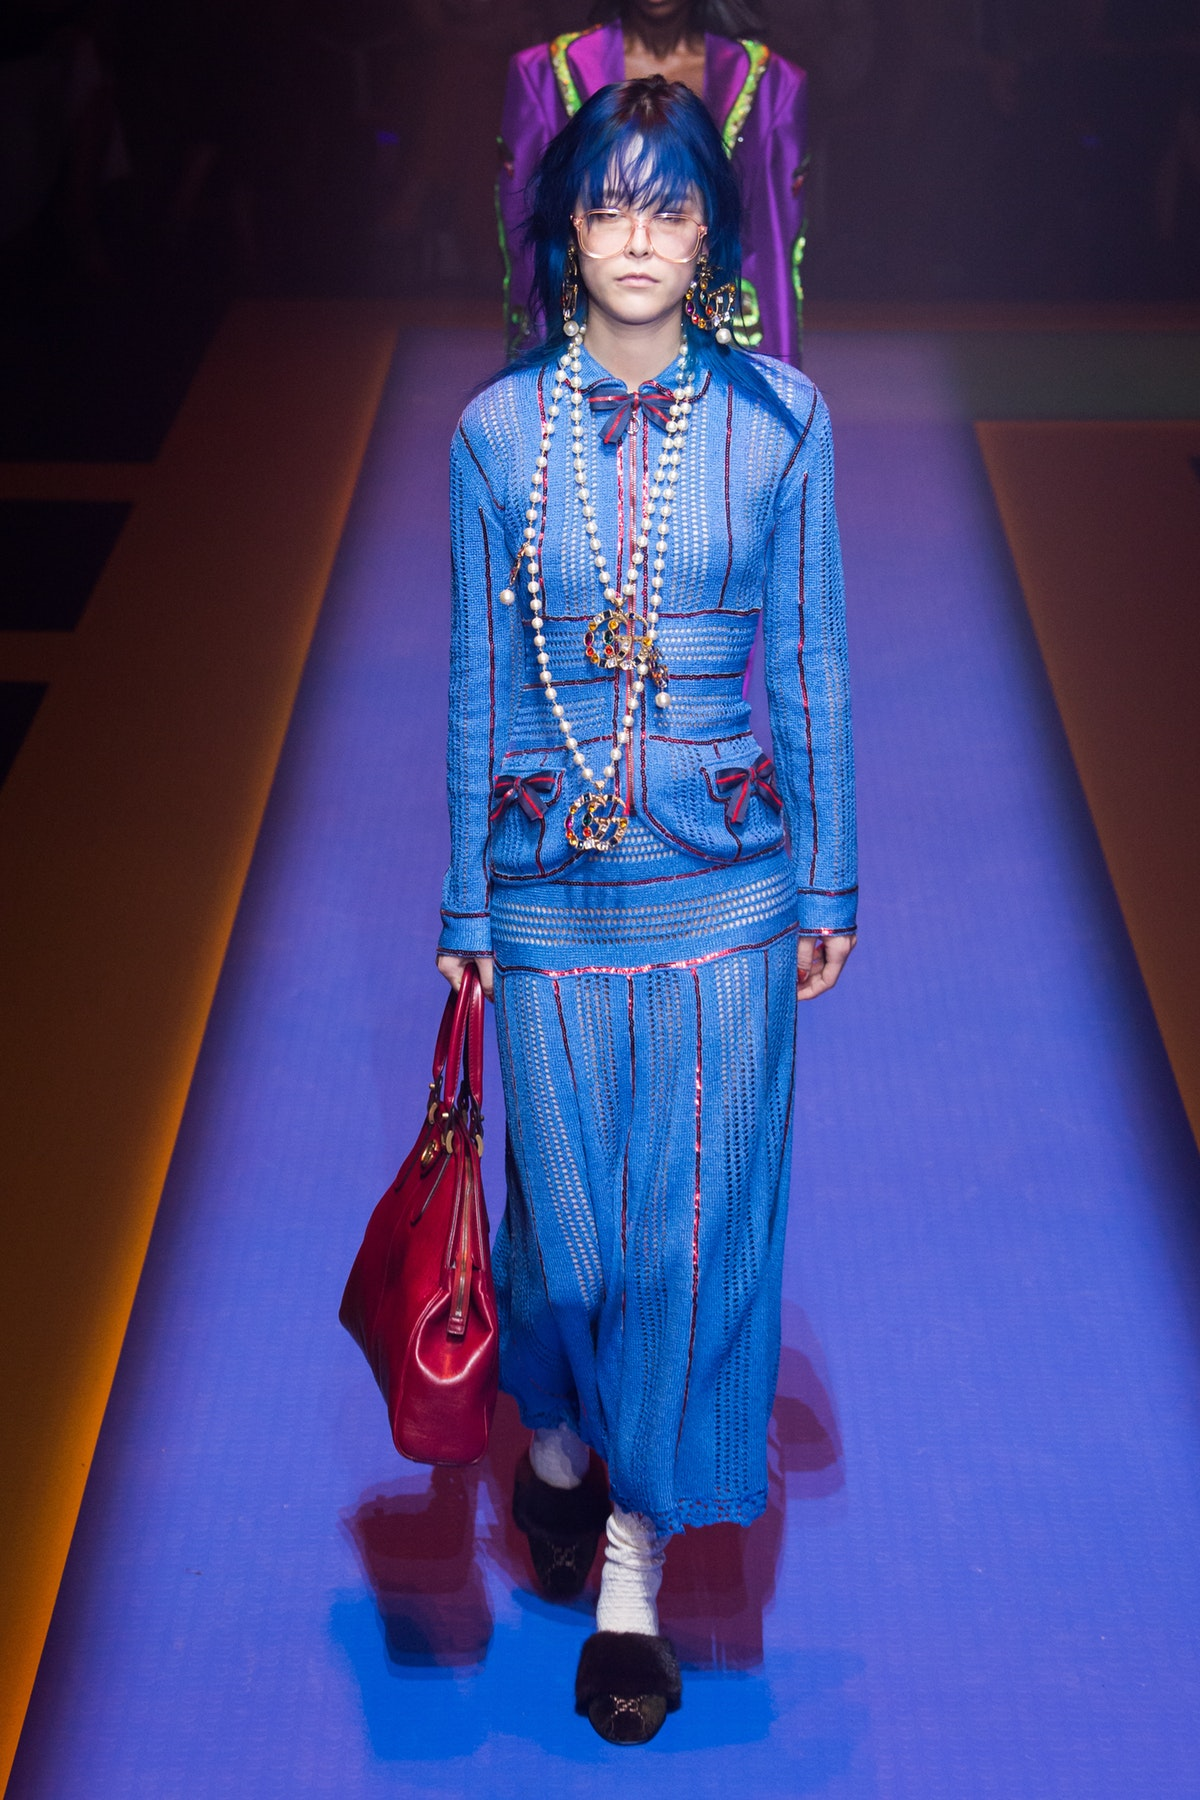 gucci_look_31_ready_to_wear_spring_2018.jpeg